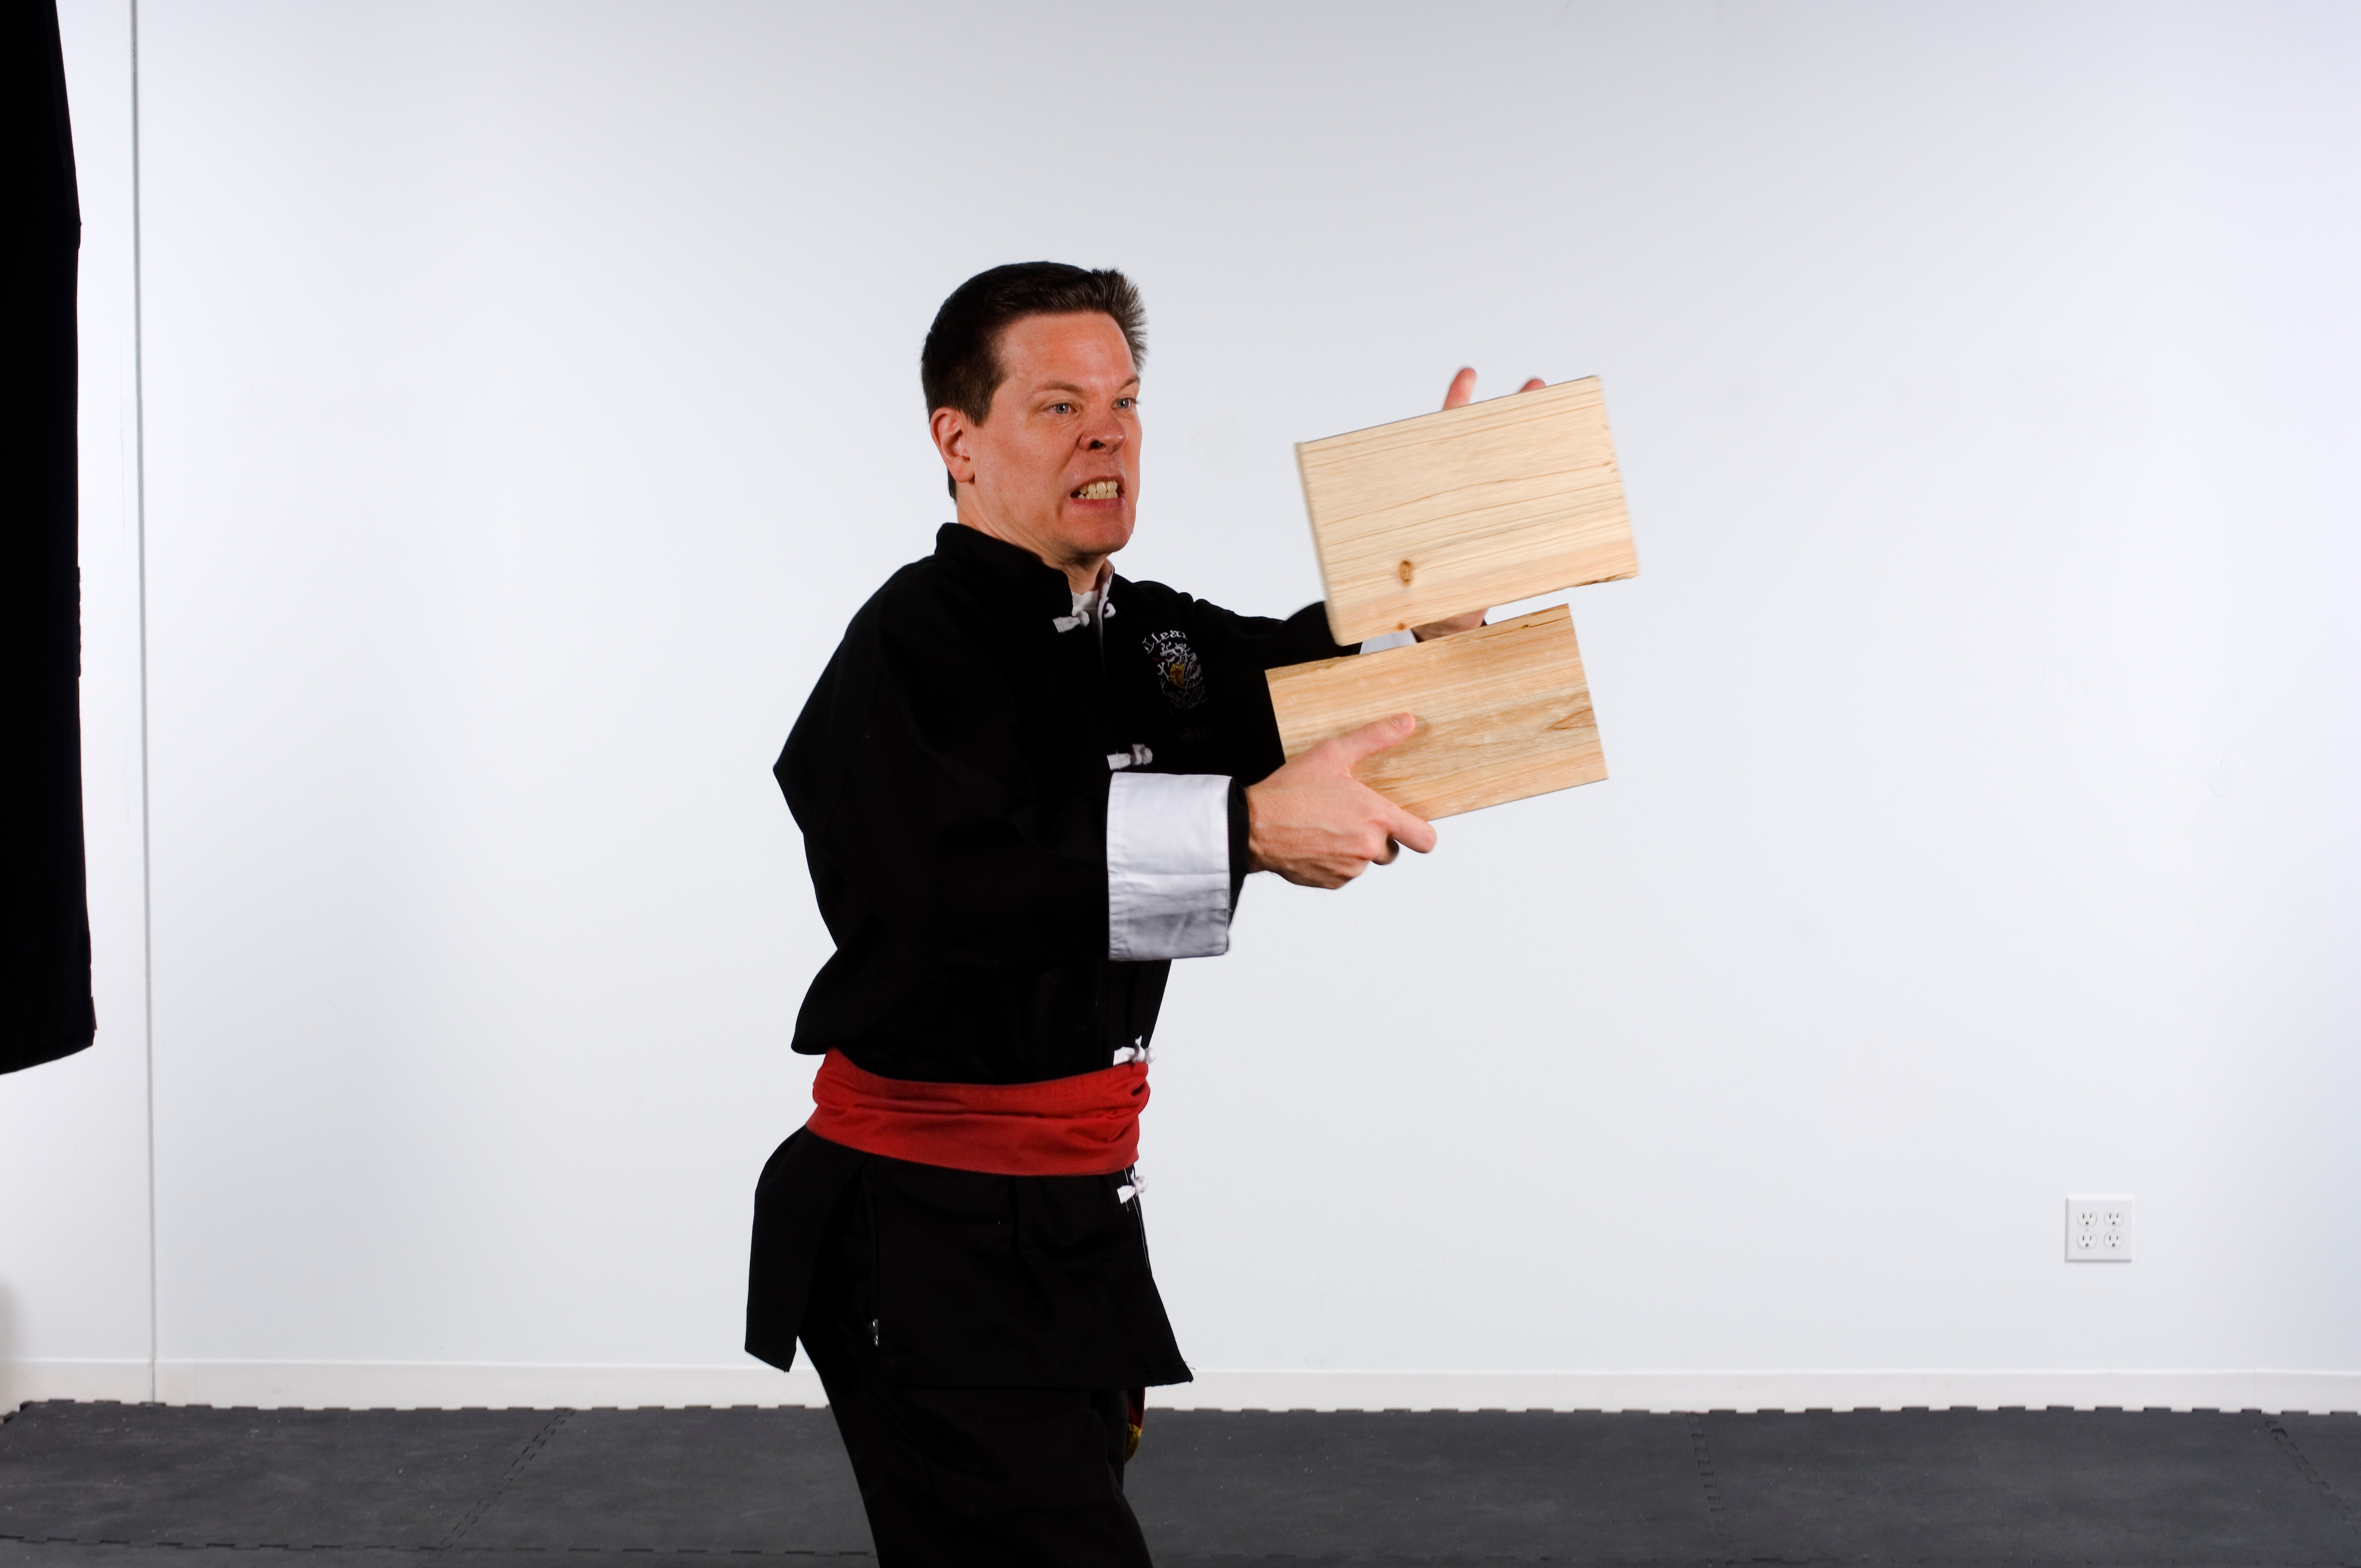 Board breaking in kung fu requires concentration and self-discipline.